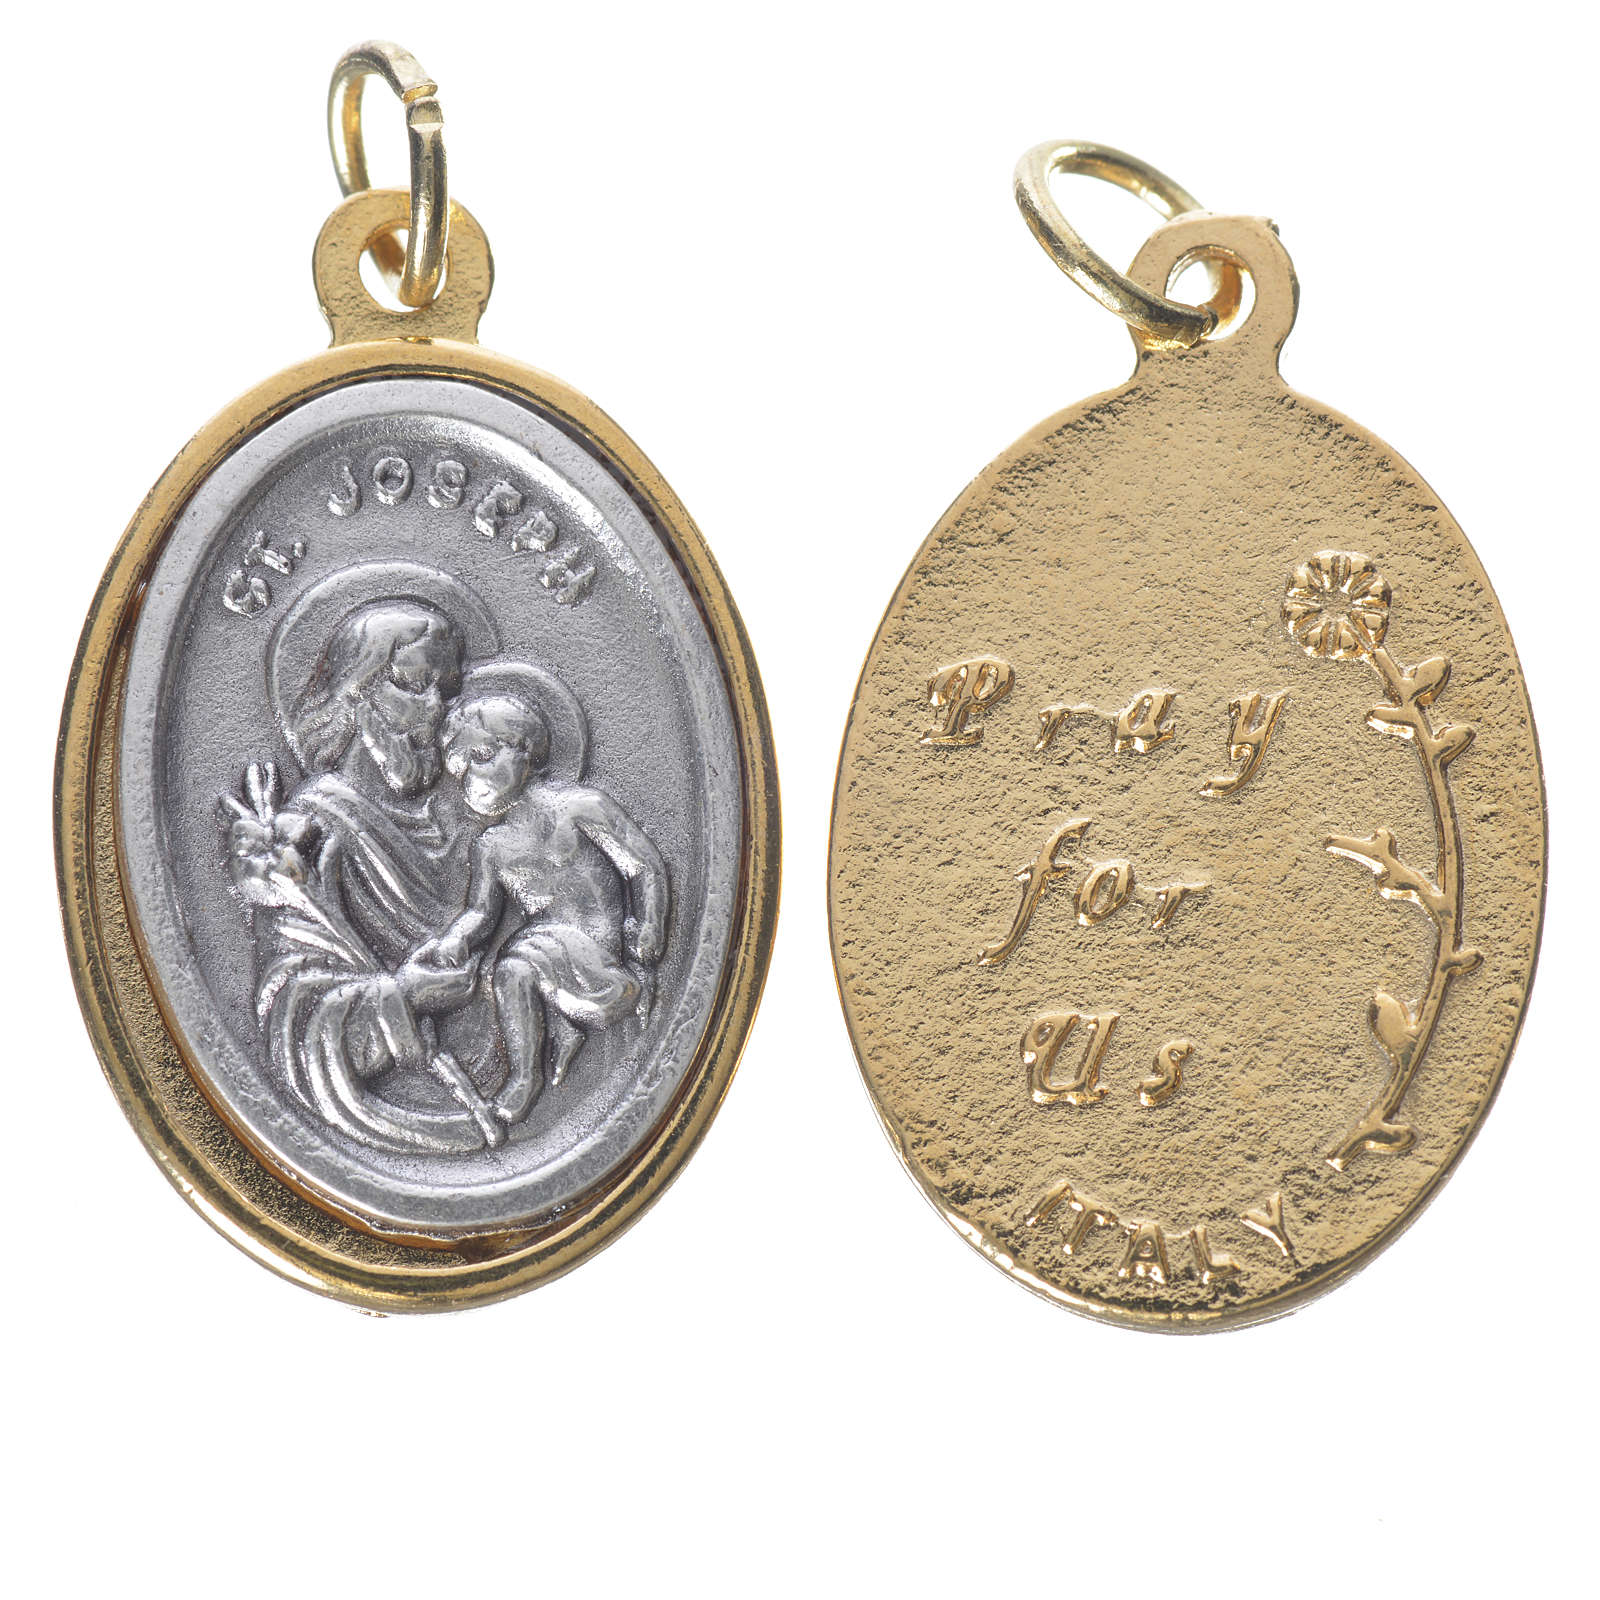 St Joseph with Baby Jesus, silver and golden medal 2.5cm 4